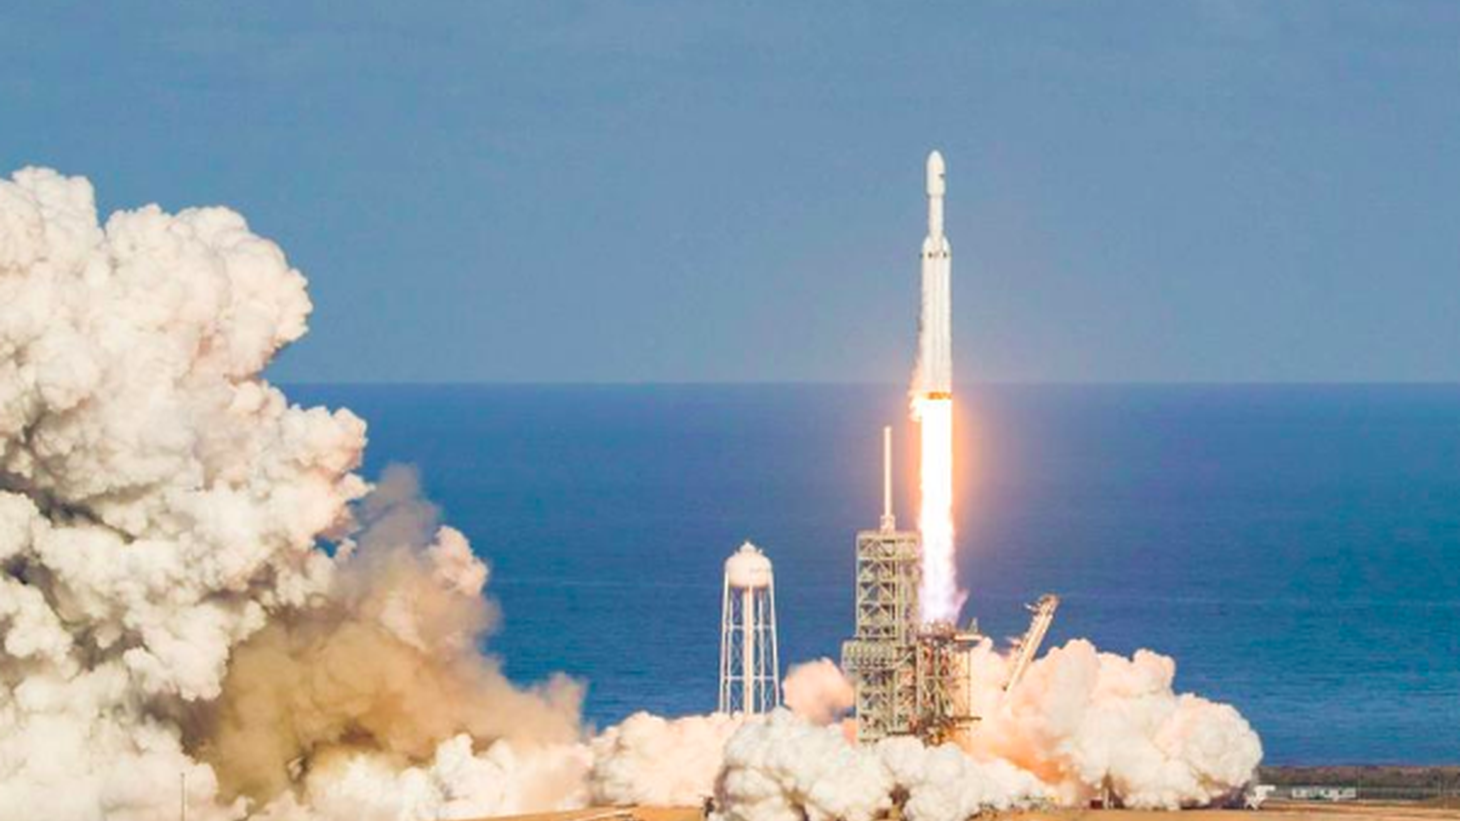 SpaceX launched its Falcon Heavy rocket today from the Kennedy Space Center in Cape Canaveral, Florida. They used a historic launch pad -- the same one that sent Neil Armstrong to the moon.